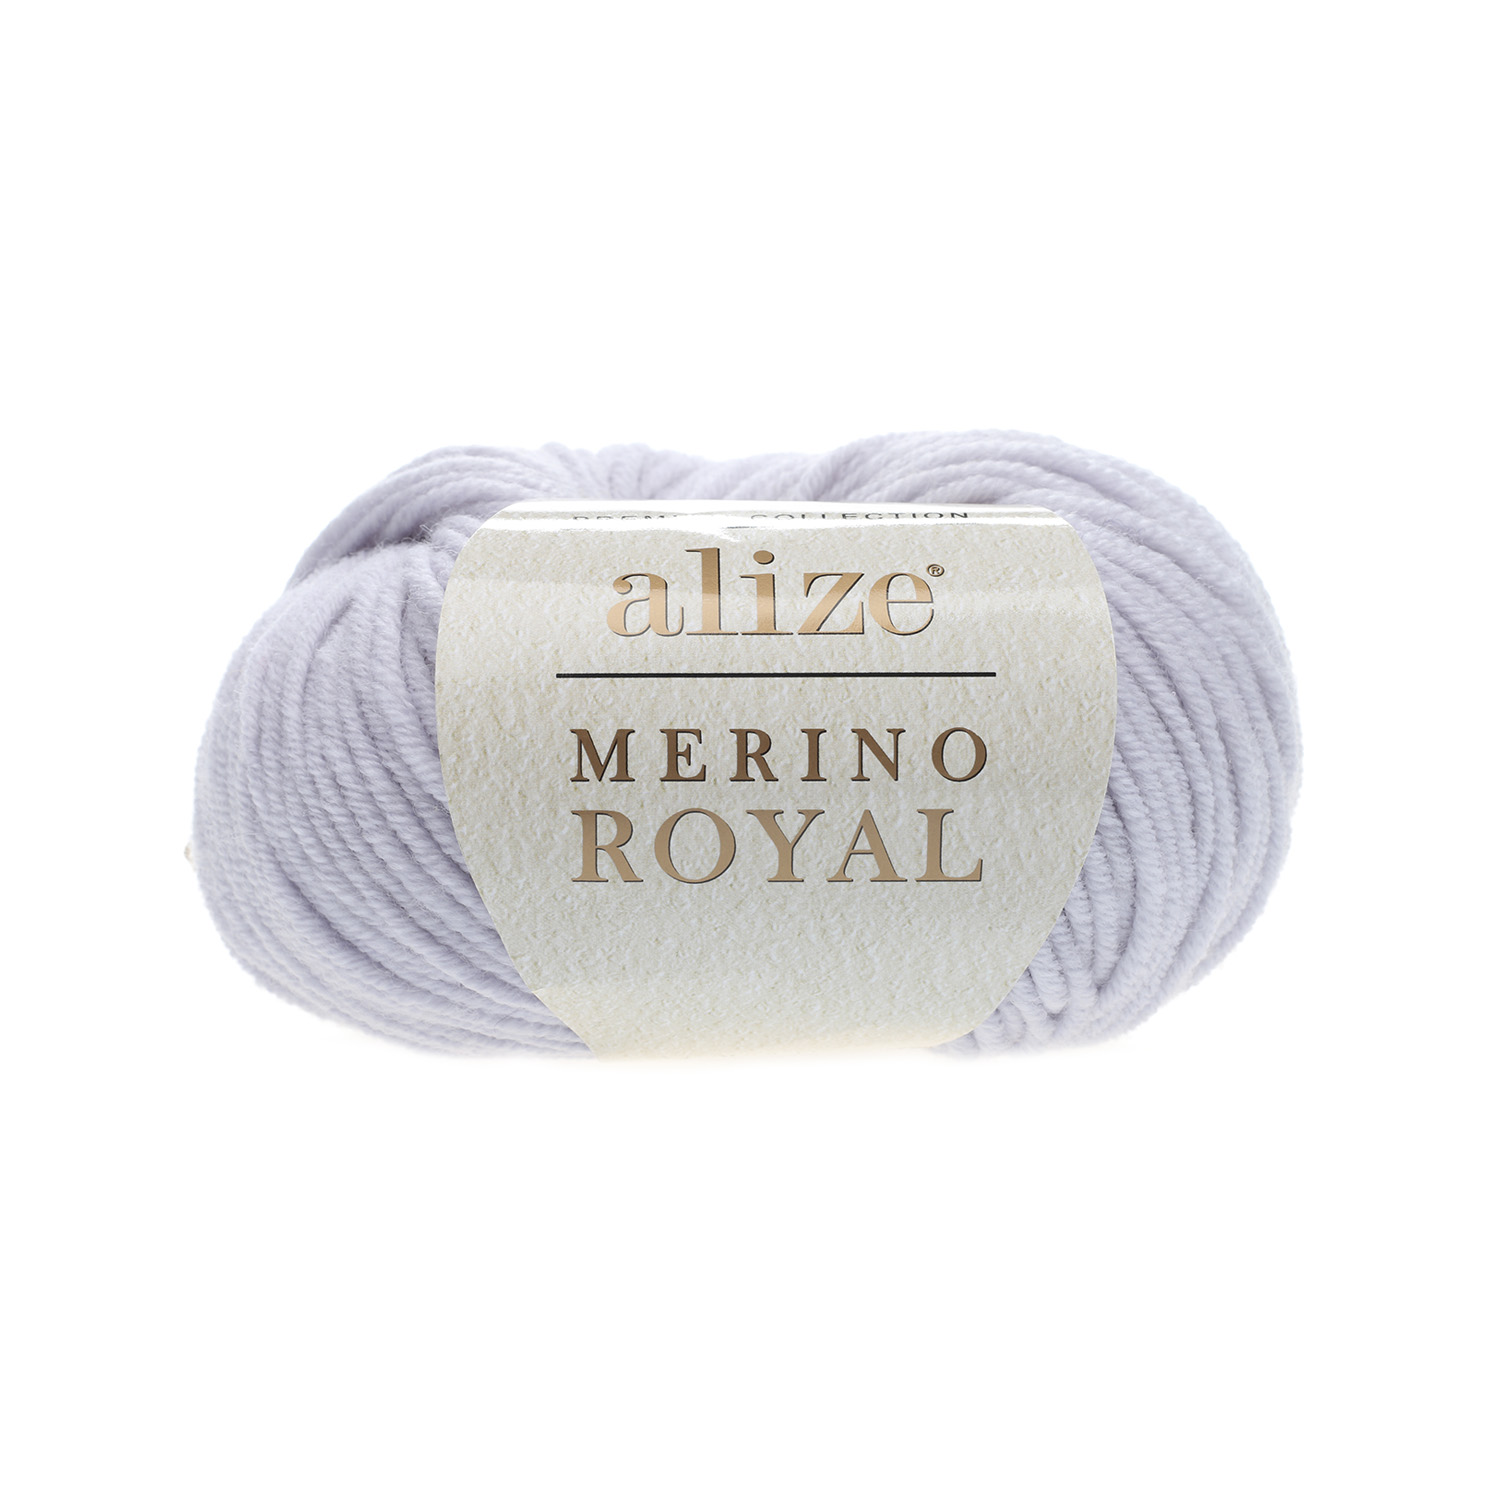 Svetlo sivá 100% merino vlna Merino Royal 362 (Superwash)